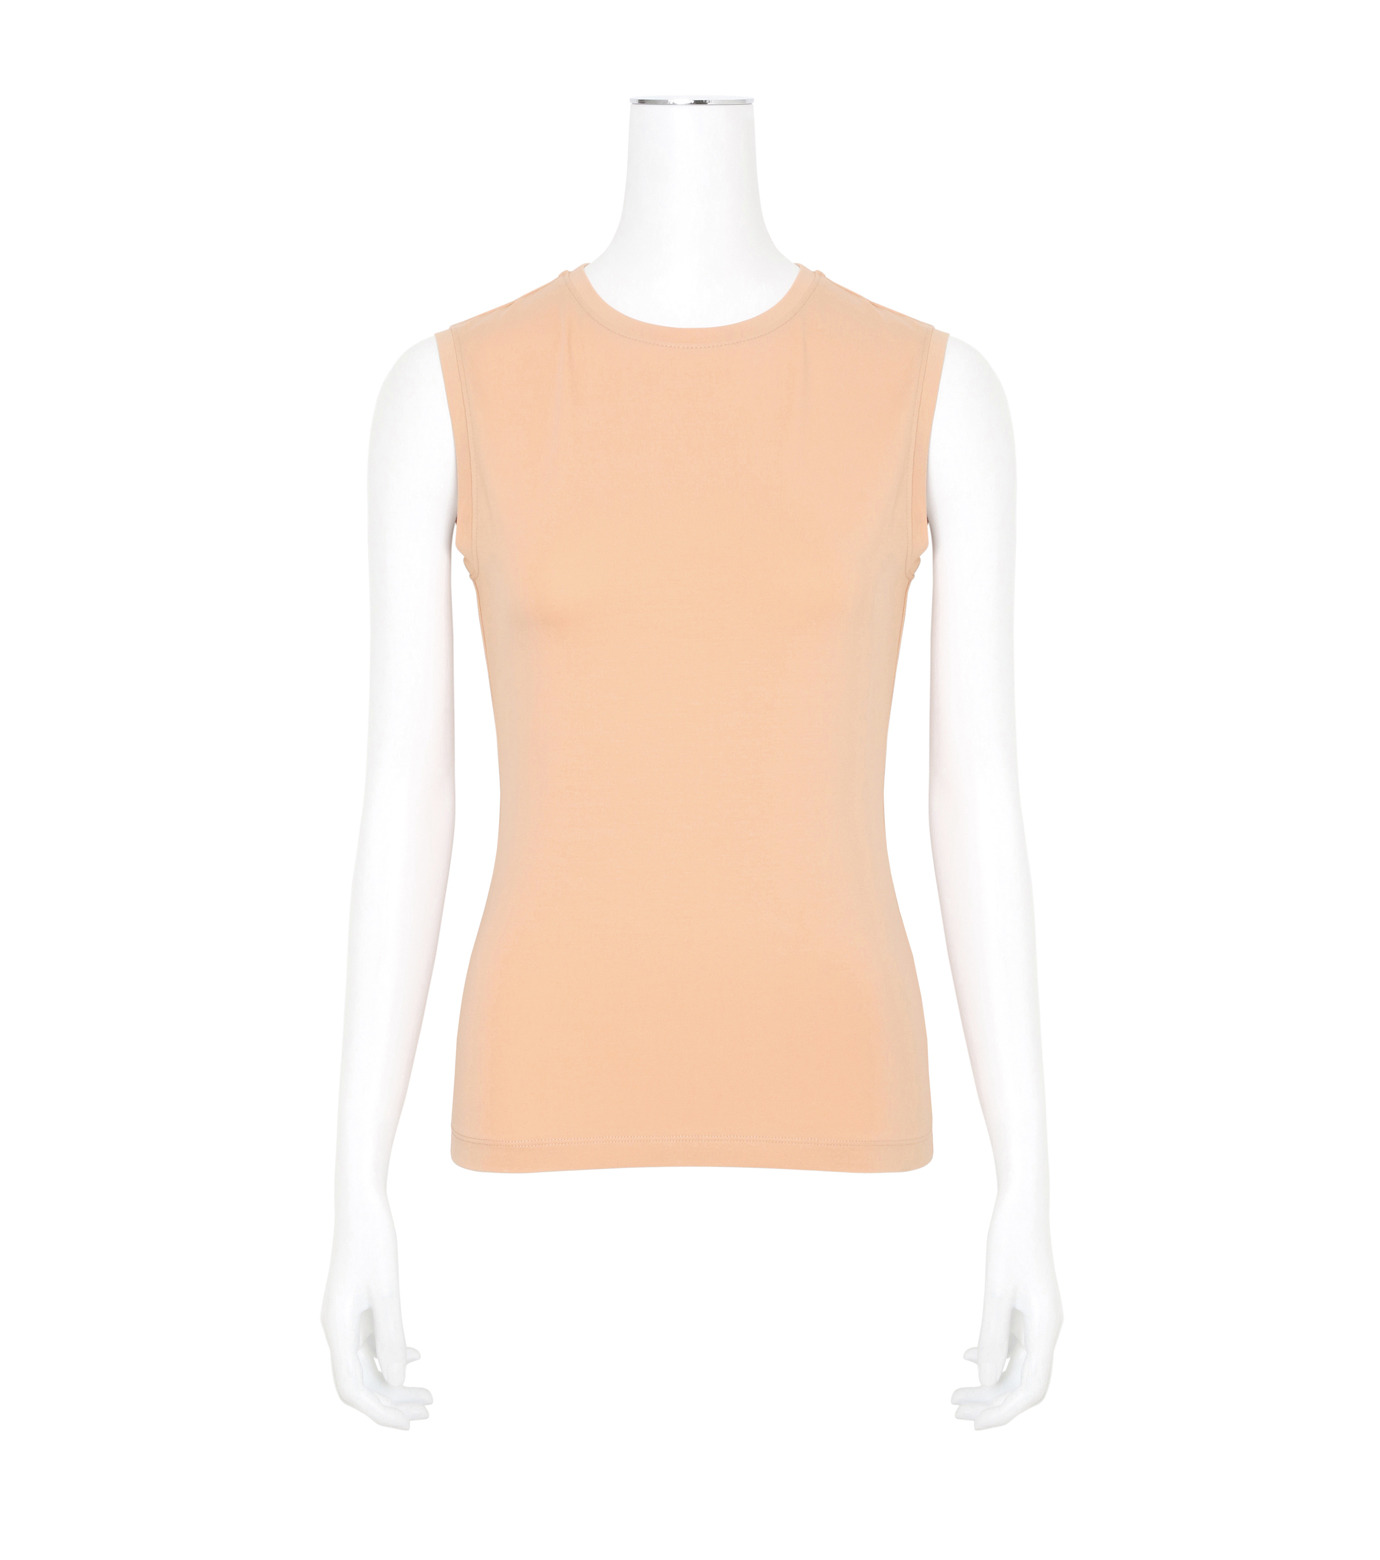 ACNE STUDIOS(アクネ ストゥディオズ)のTank Top-BEIGE(カットソー/cut and sewn)-15A166-52 拡大詳細画像1